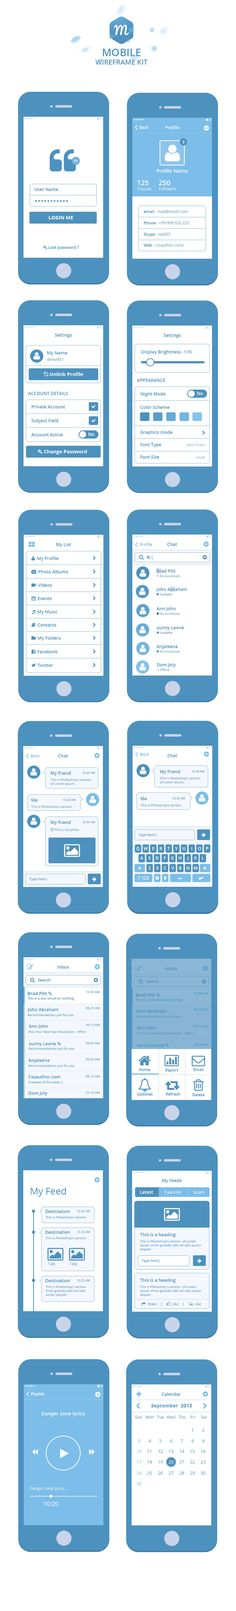 Mobile Wireframe Kit PSD › Wireframes